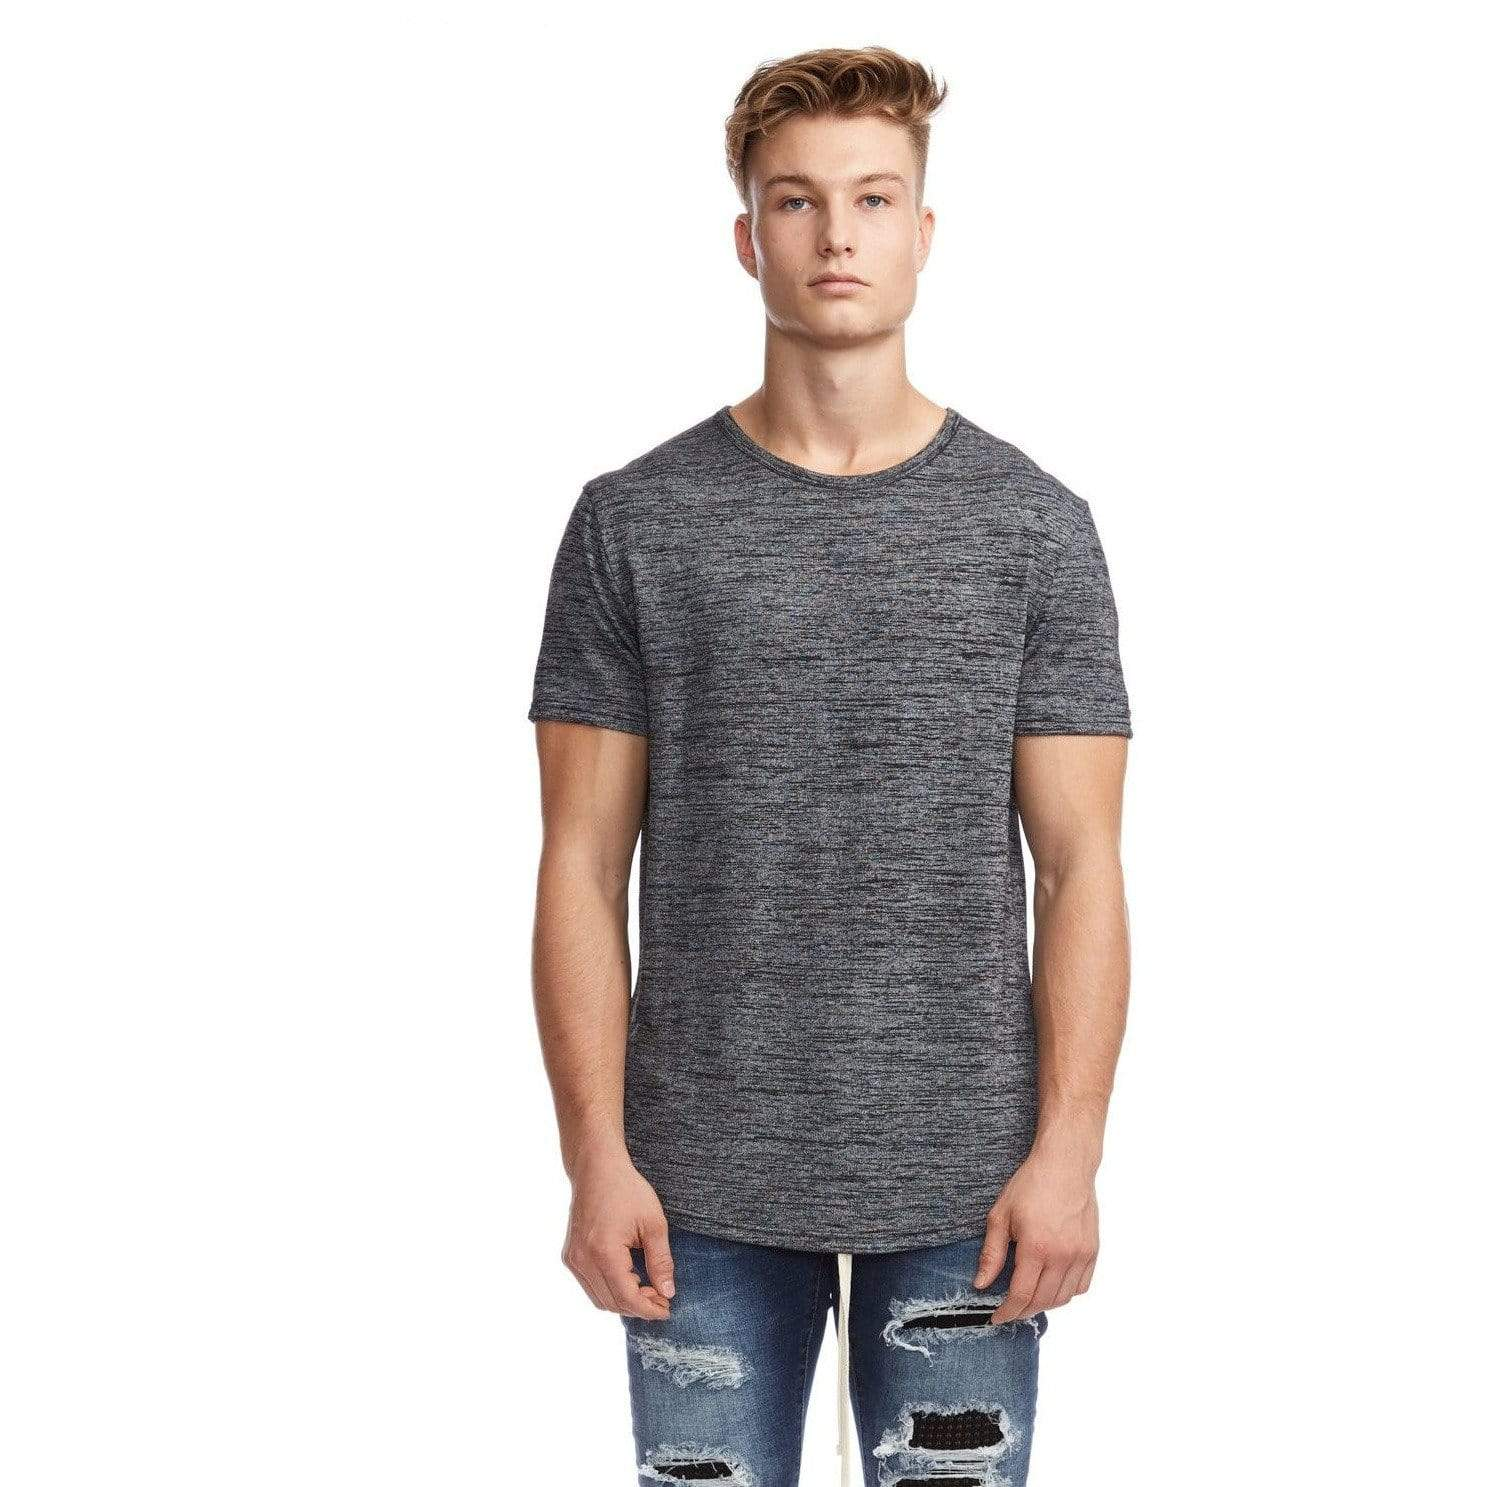 Kuwalla | Tee MIX BLACK / XL Kuwalla Tee Marled Hi-Lo Scoop